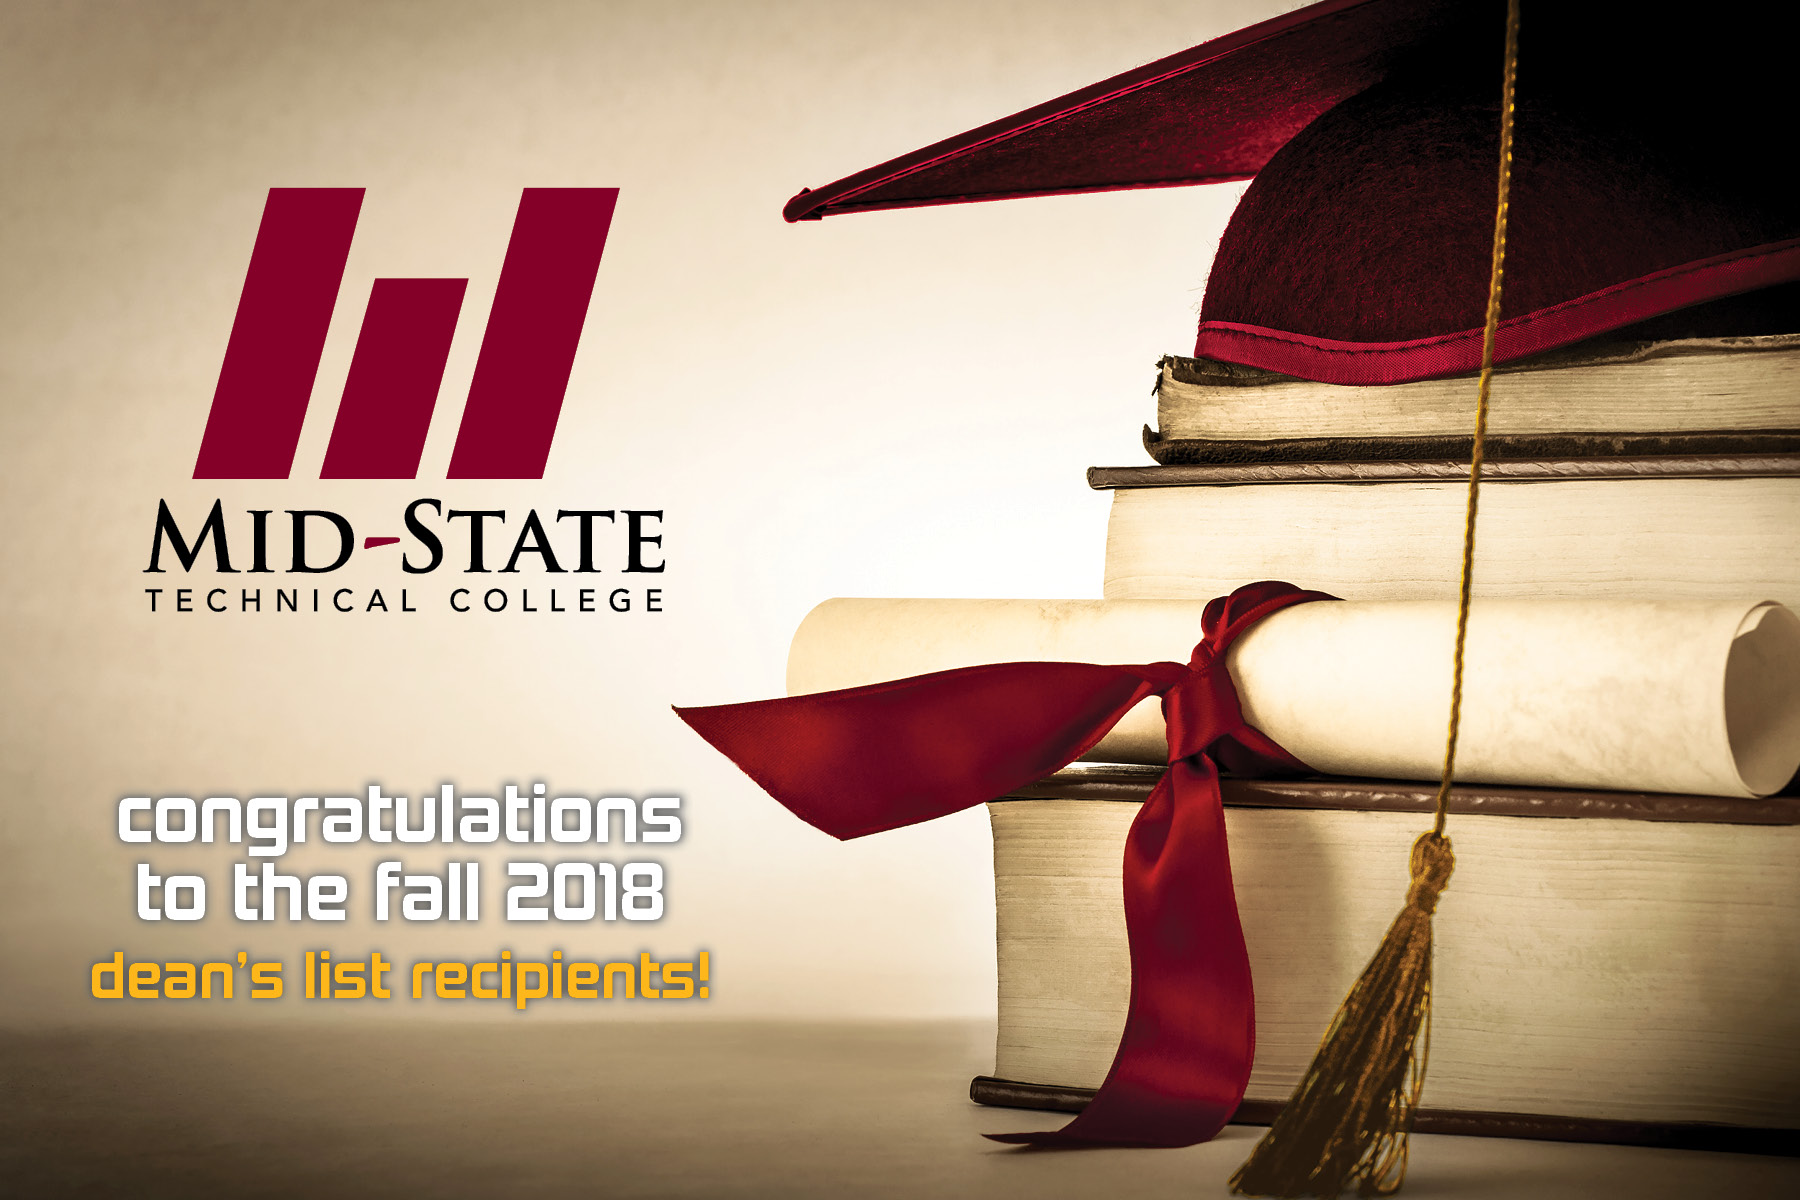 17e1bdd2914bb WISCONSIN RAPIDS – Mid-State Technical College has announced its Dean s  List for the 2018 fall semester. This recognition is reserved for Mid-State  students ...